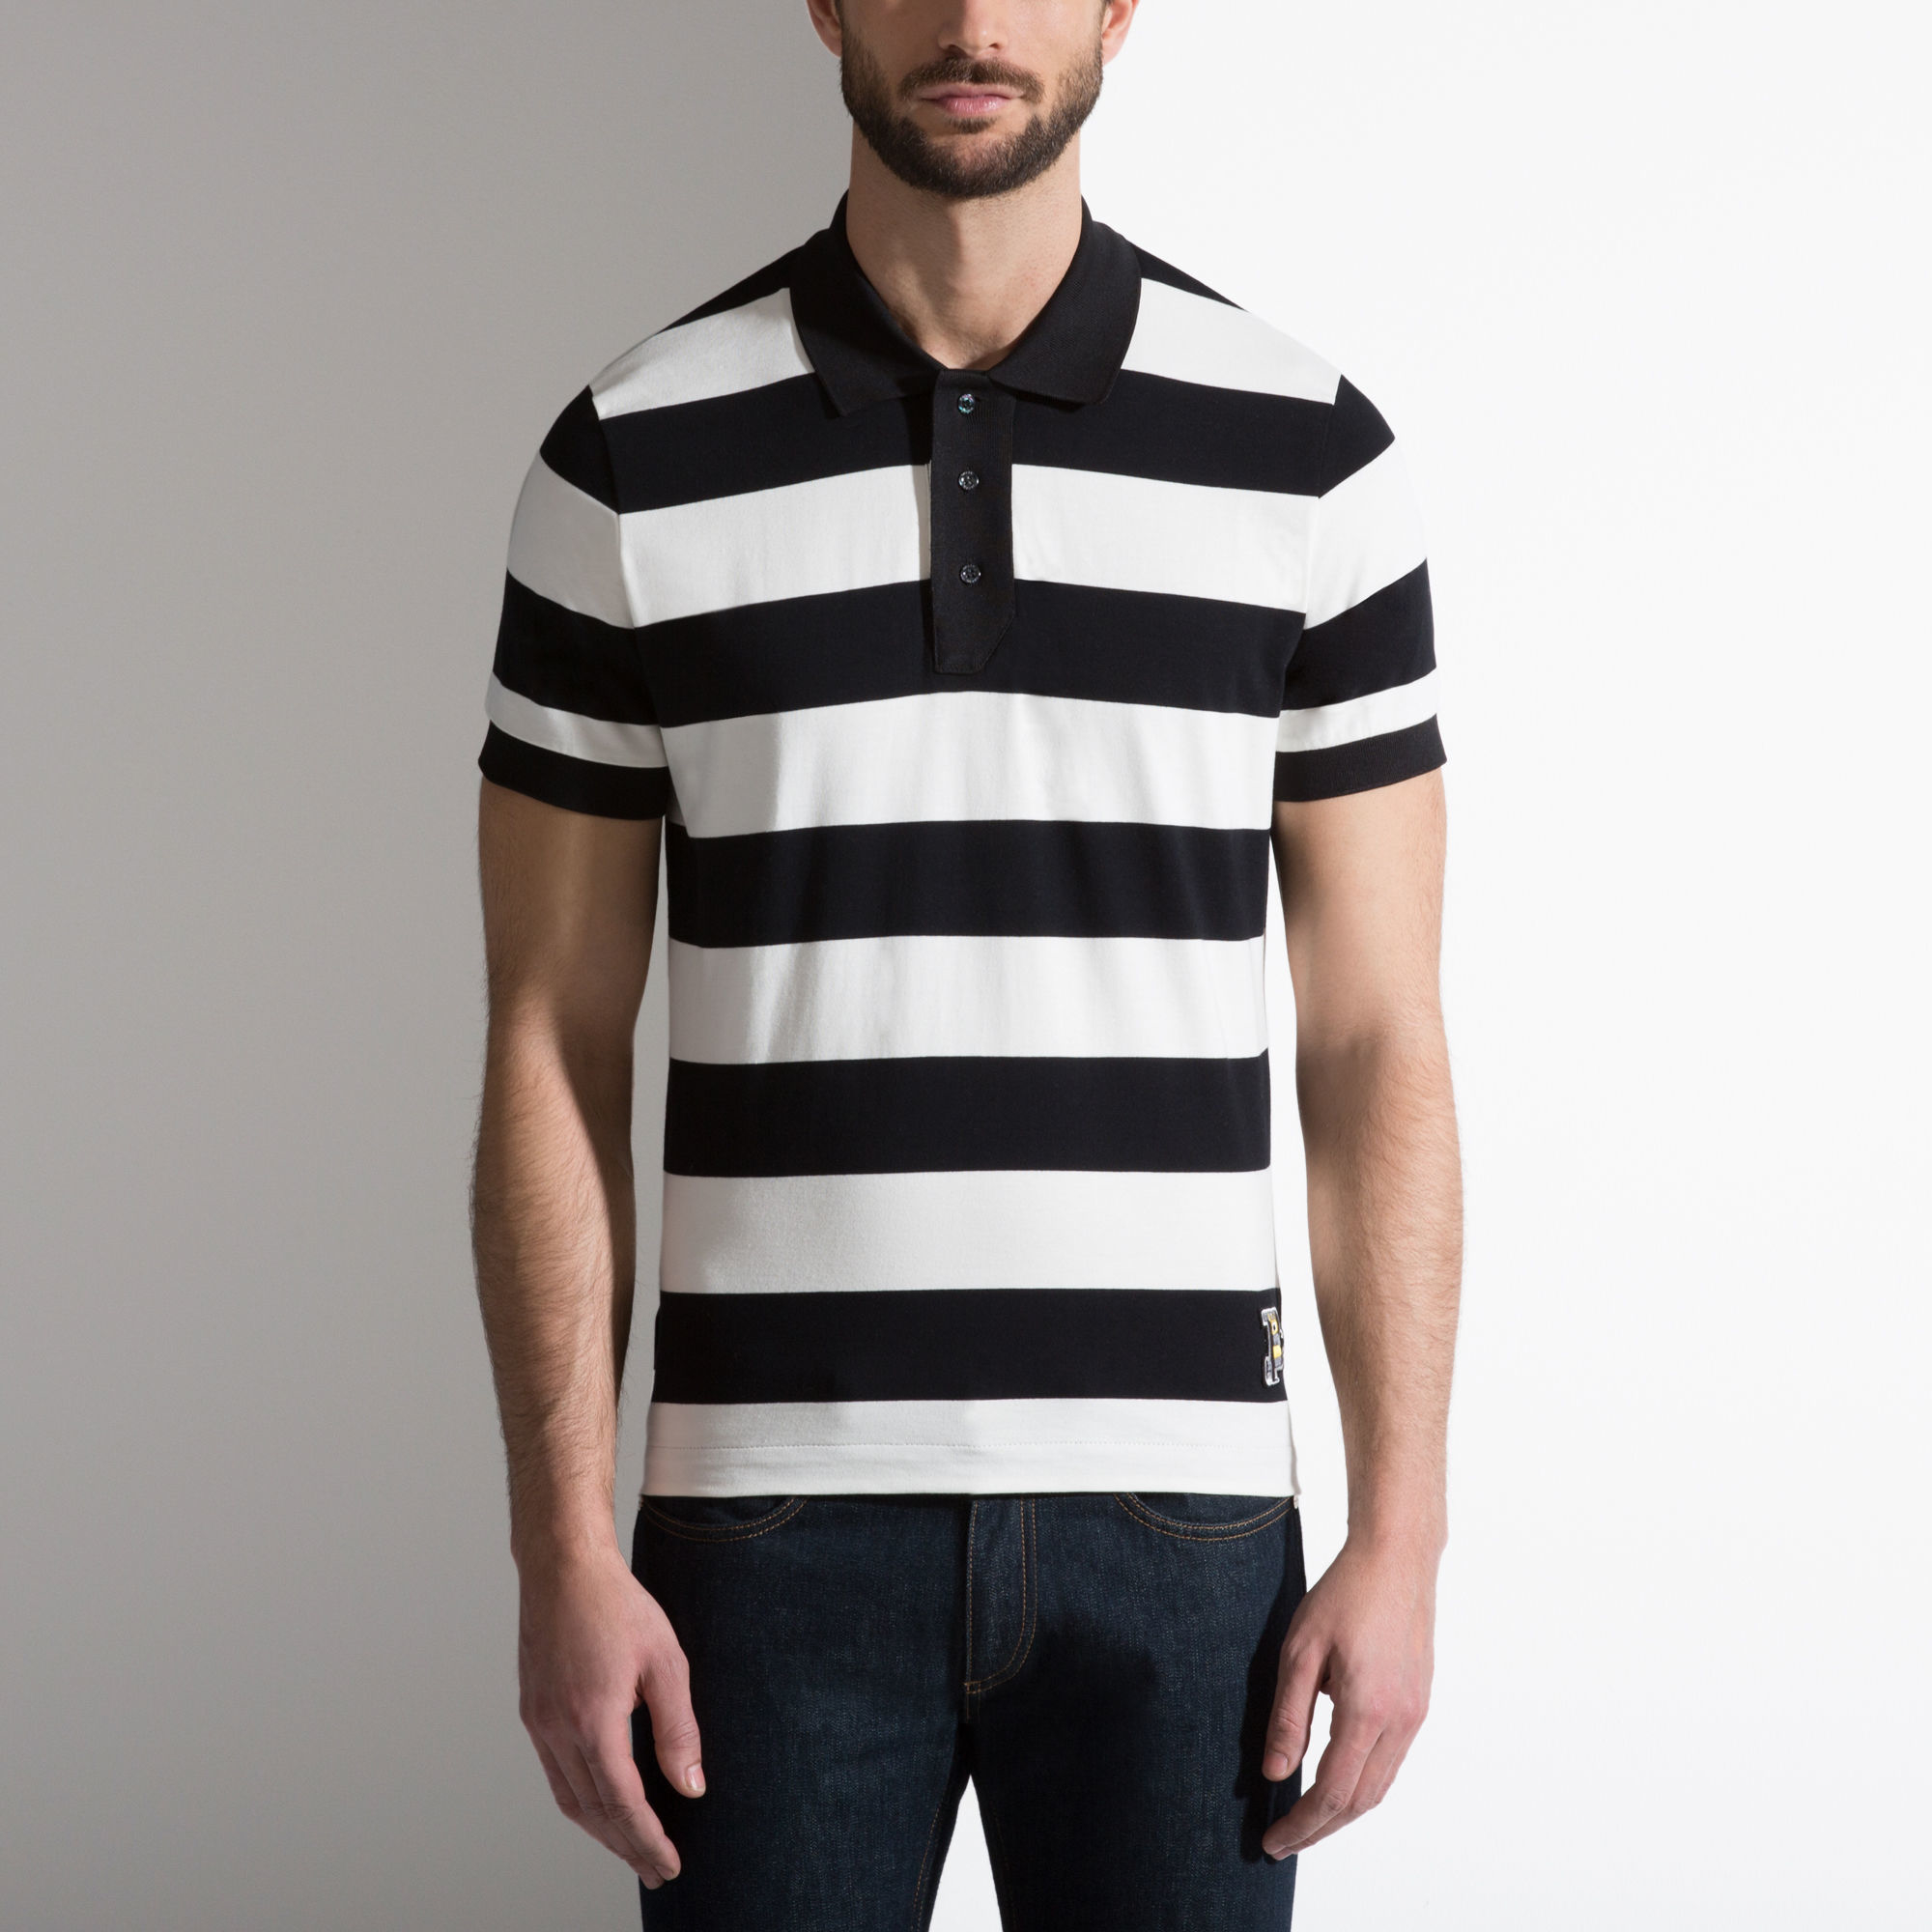 Bally Striped B Patch Polo Shirt In Black Cotton Jersey